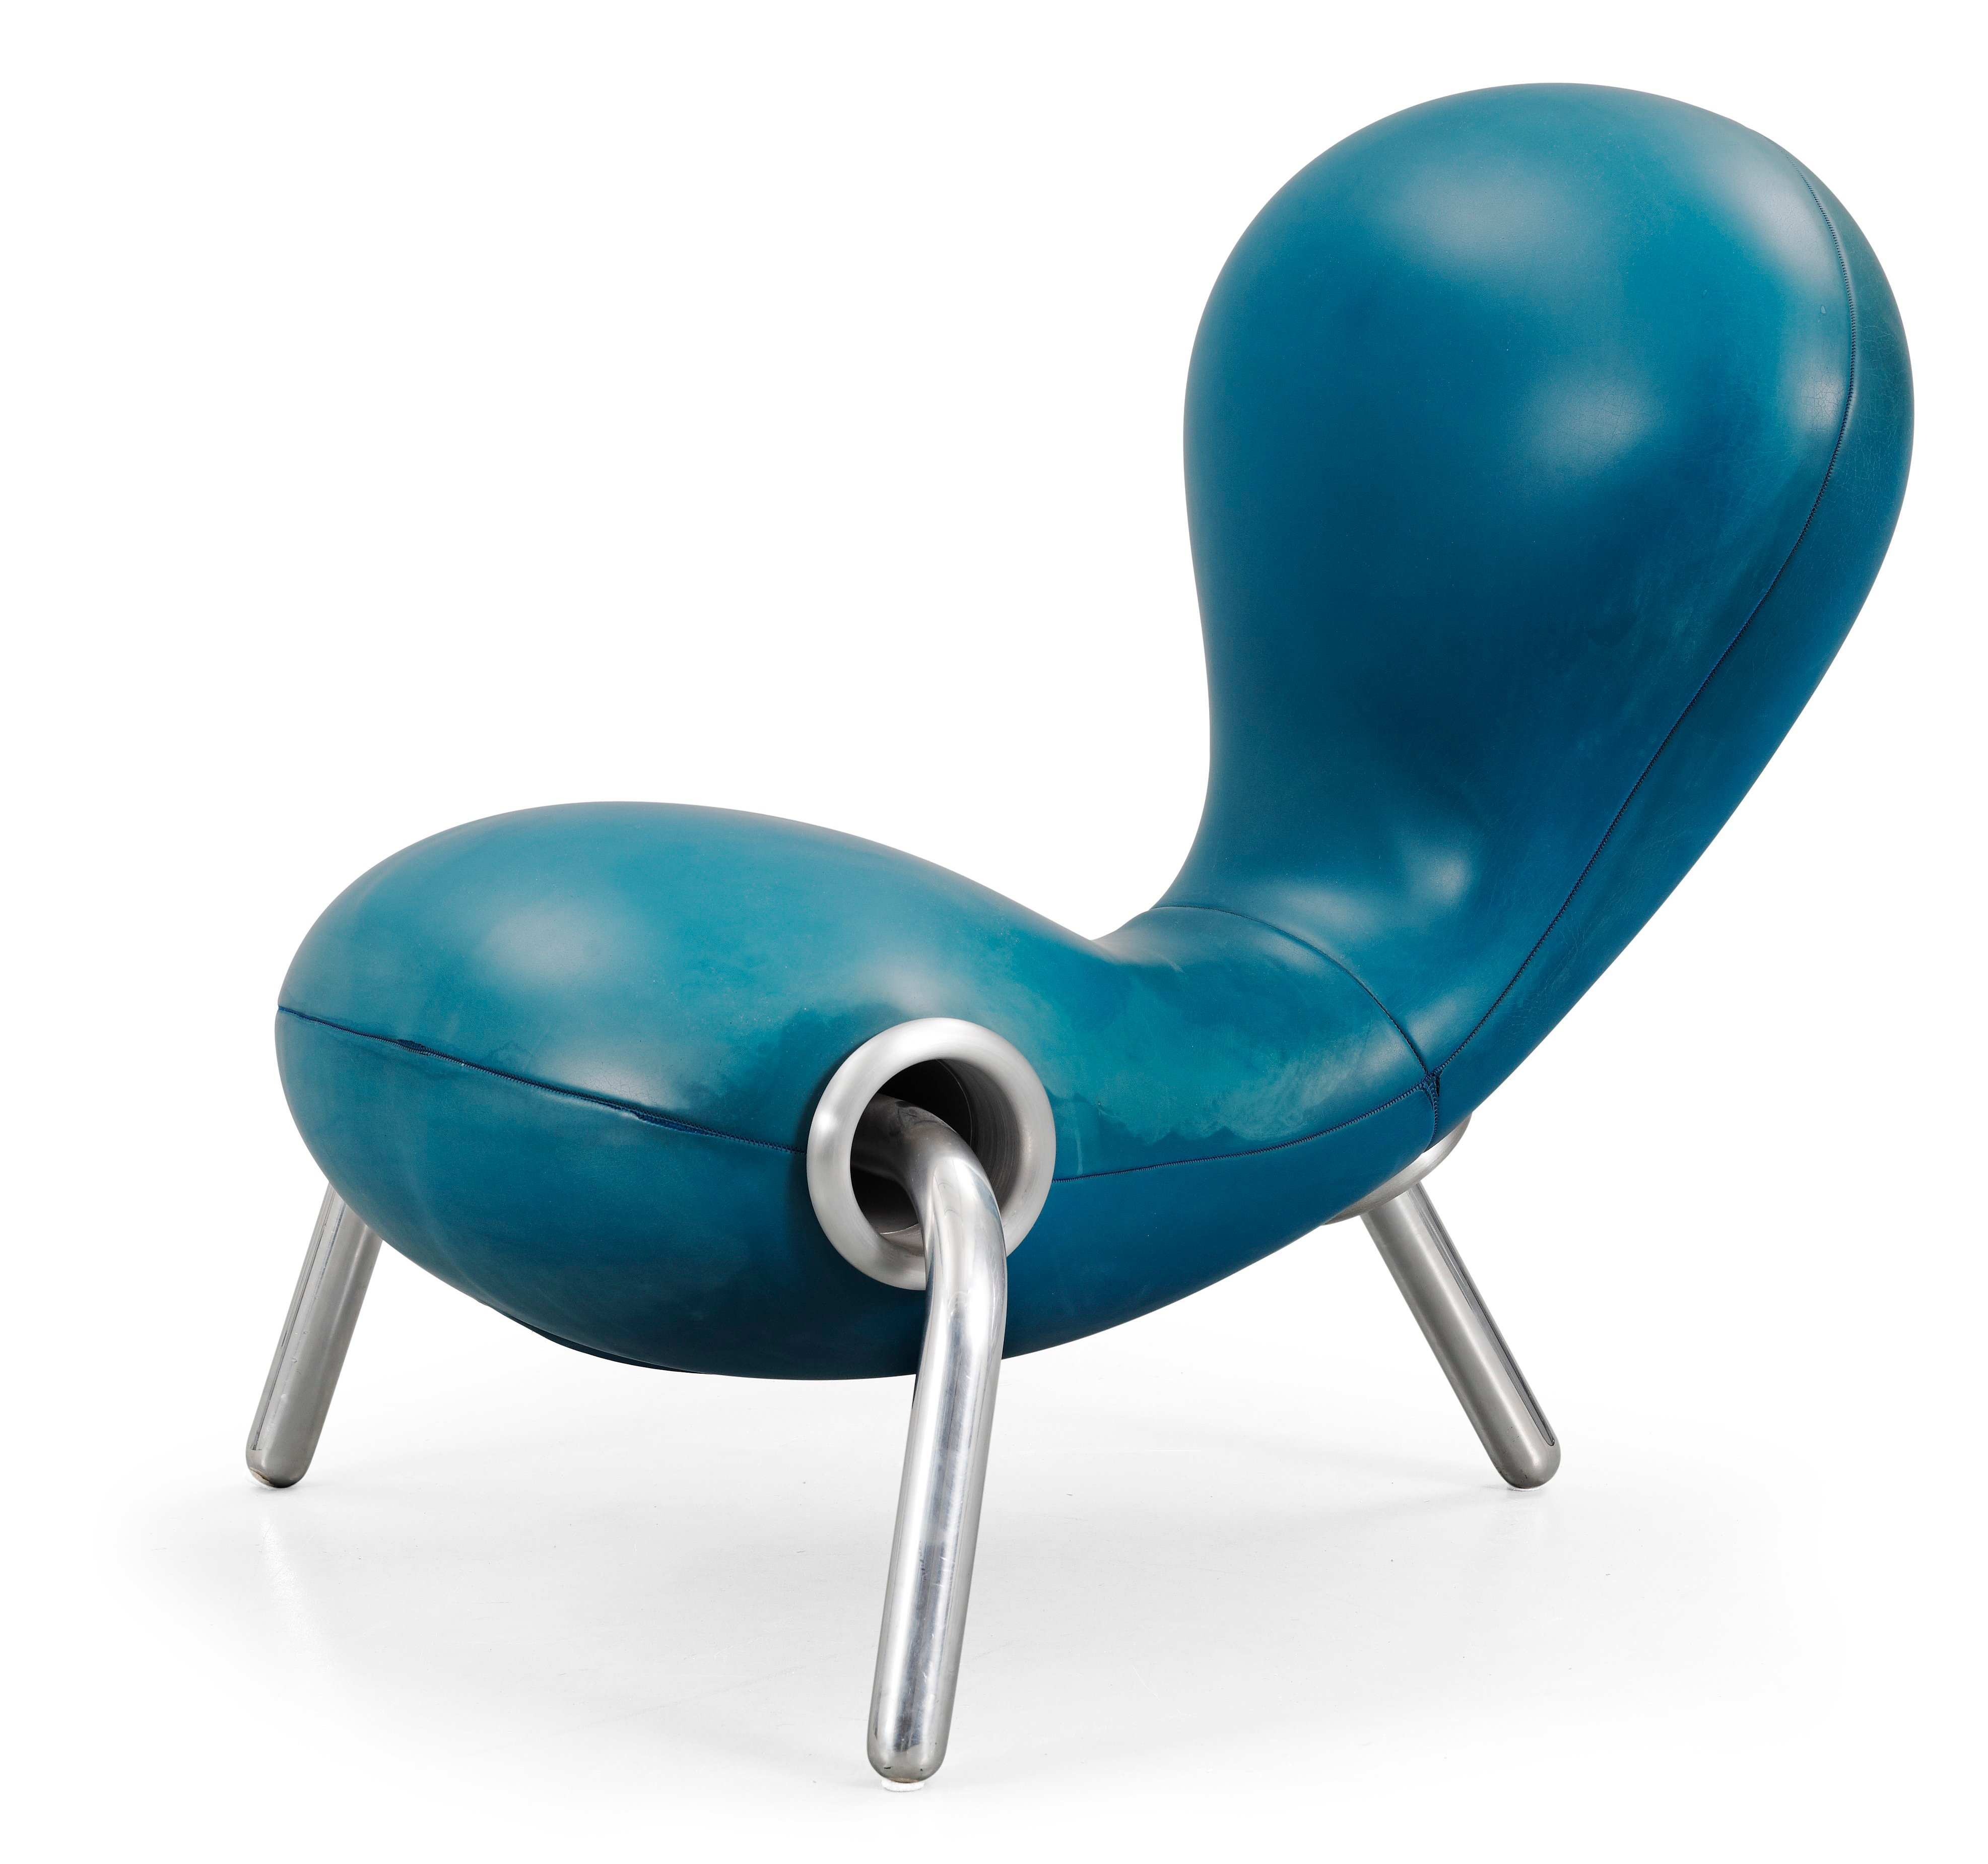 A marc newson 39 blue neoprene embryo chair by id e japan for Embryo chair